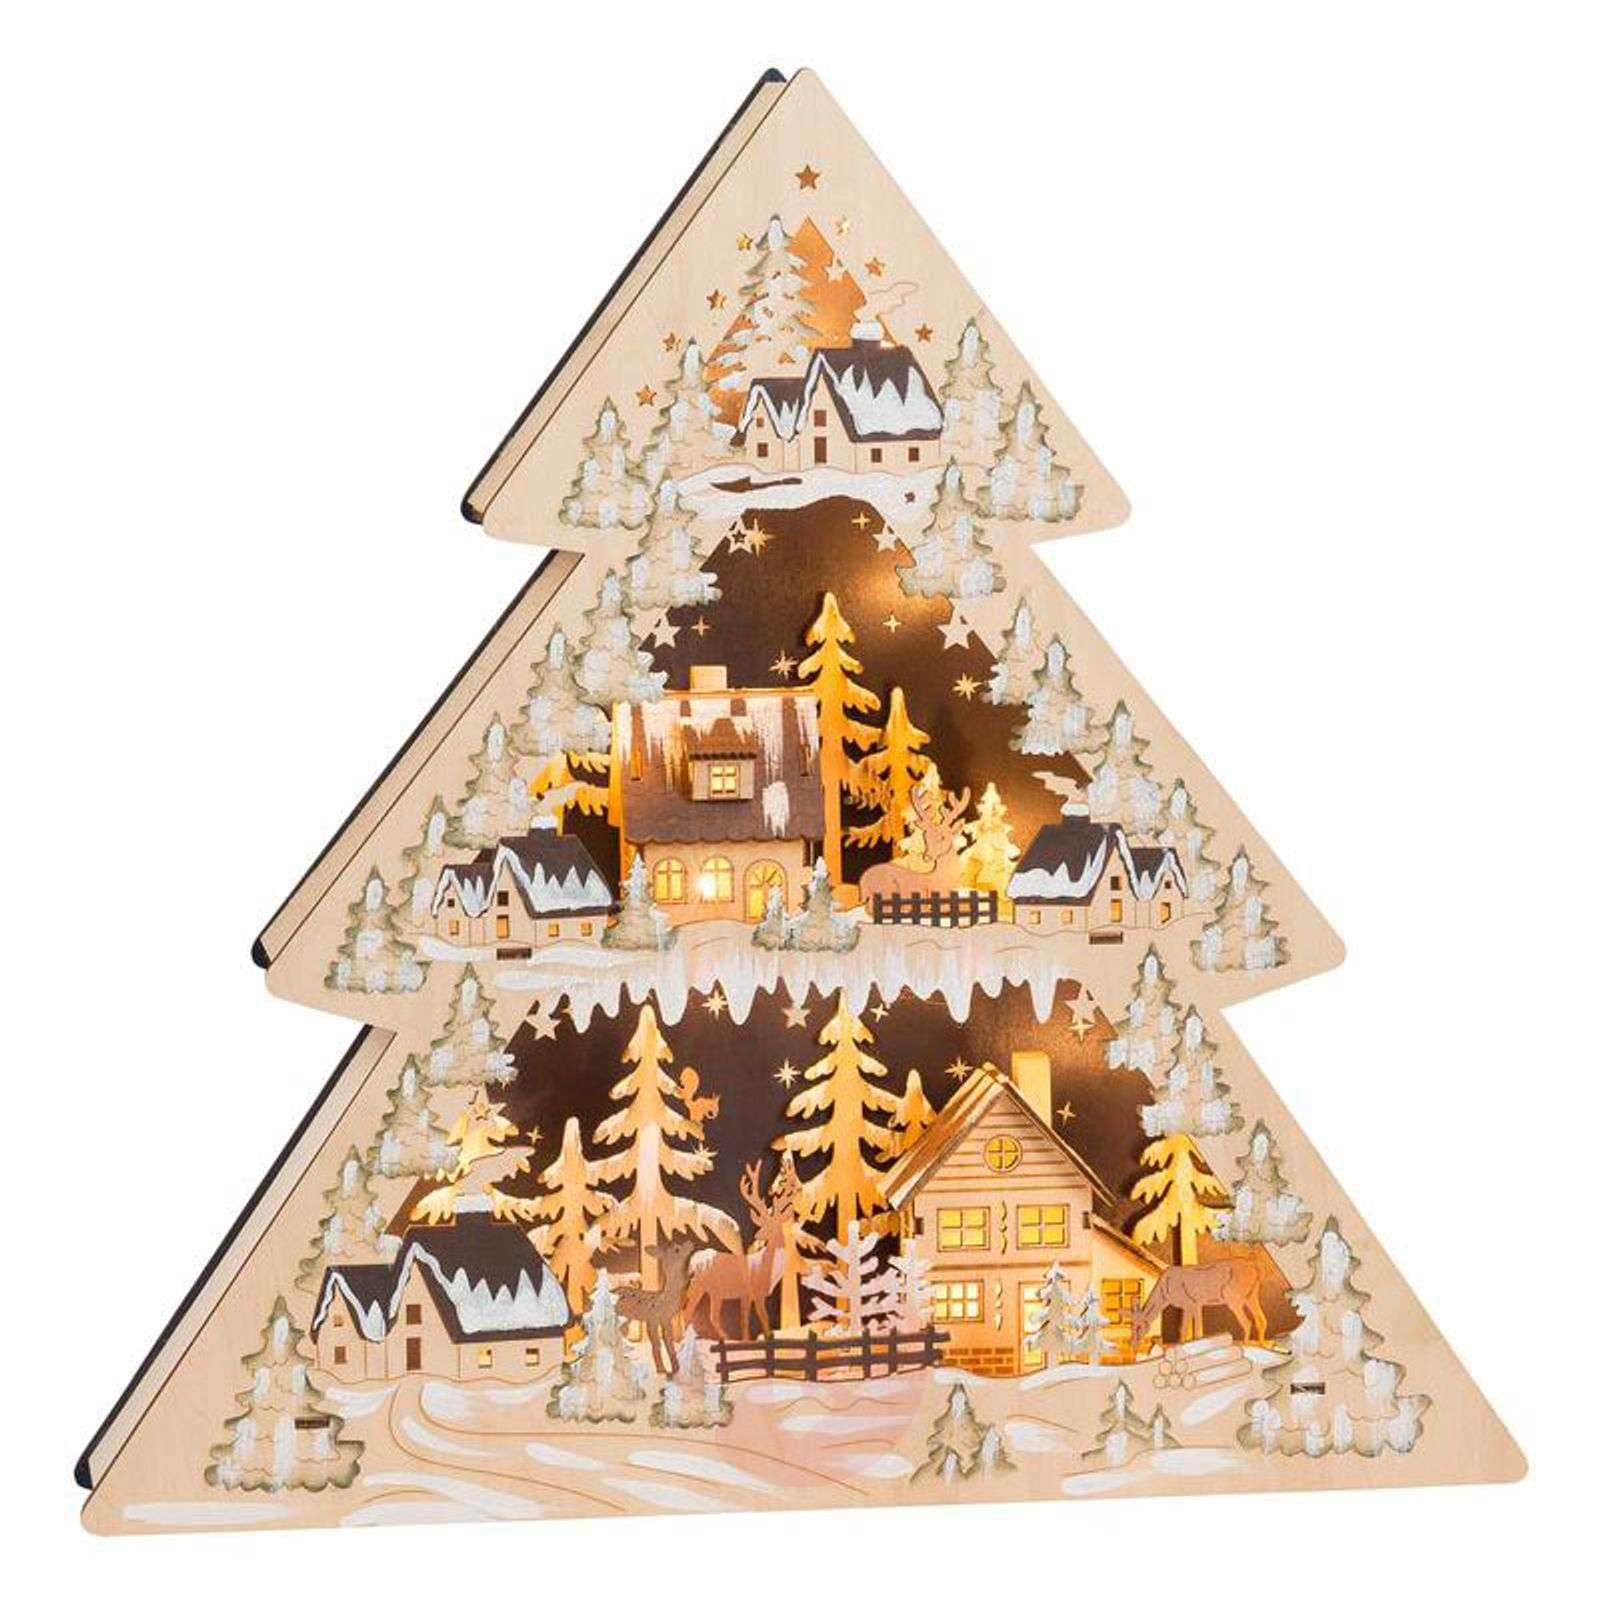 Candle arch triangle Winter Village LED-8501230-01